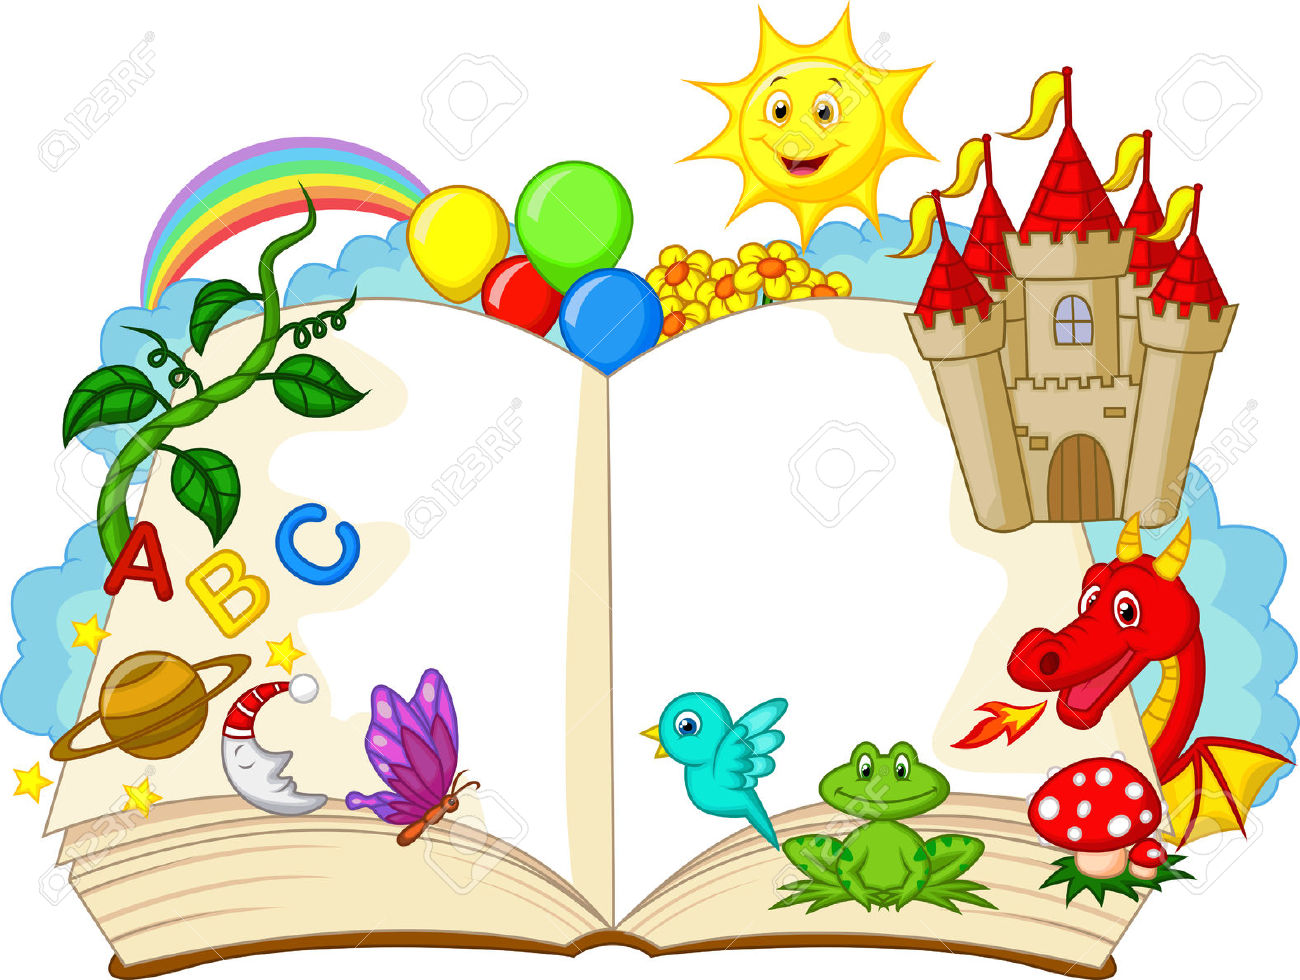 Fairy tale book free. Fairytale clipart cartoon